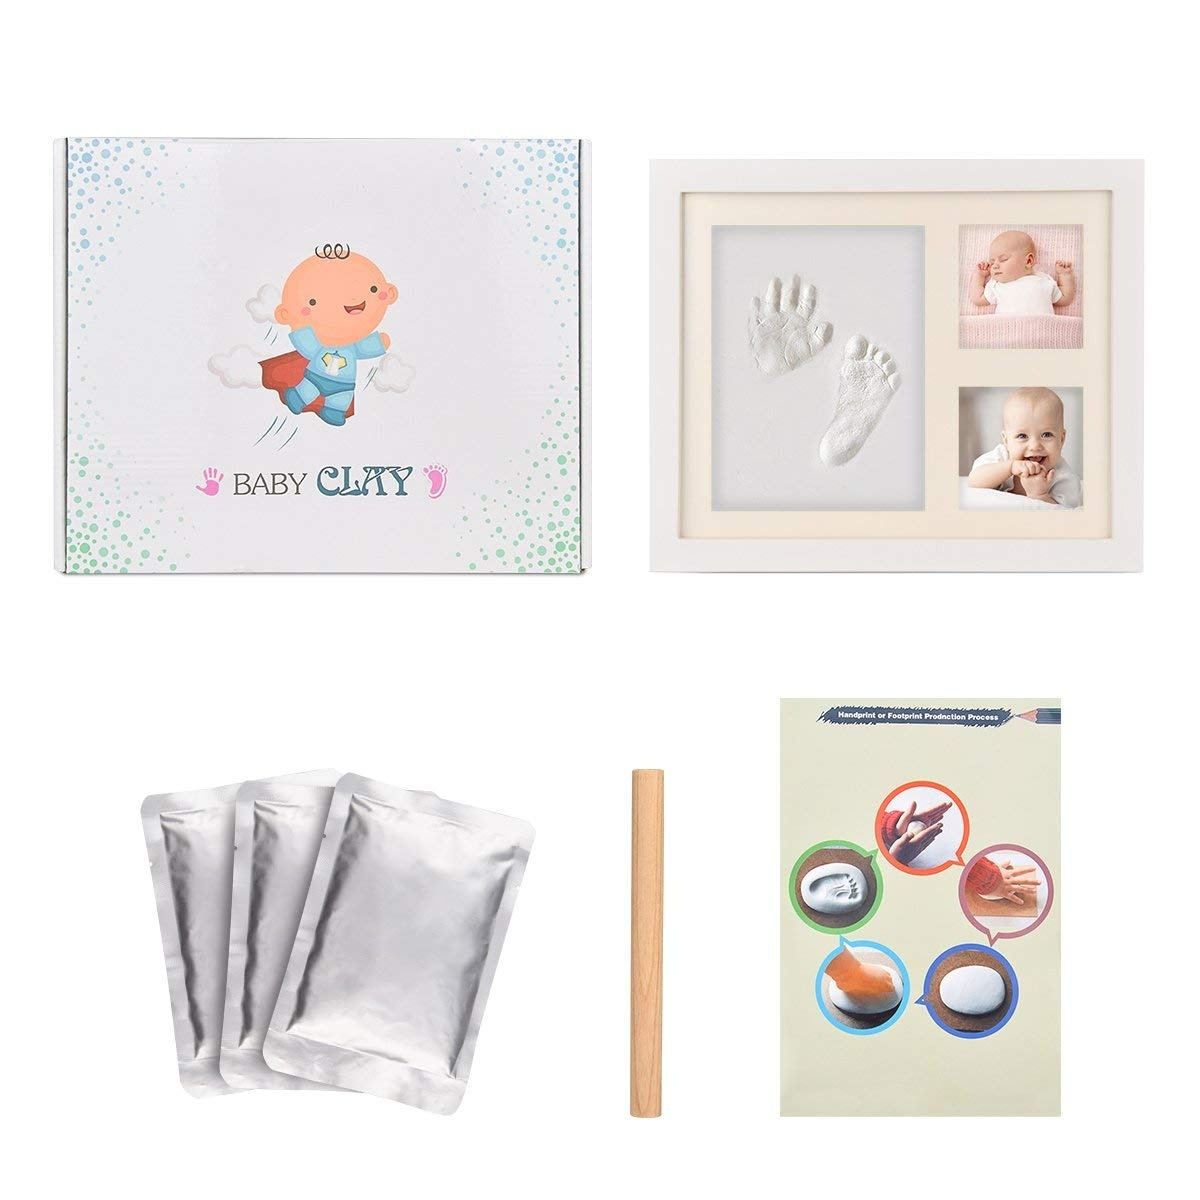 Joyeee Baby Handprint /& Footprint Photo Frame Kit, Unique Keepsakes ...